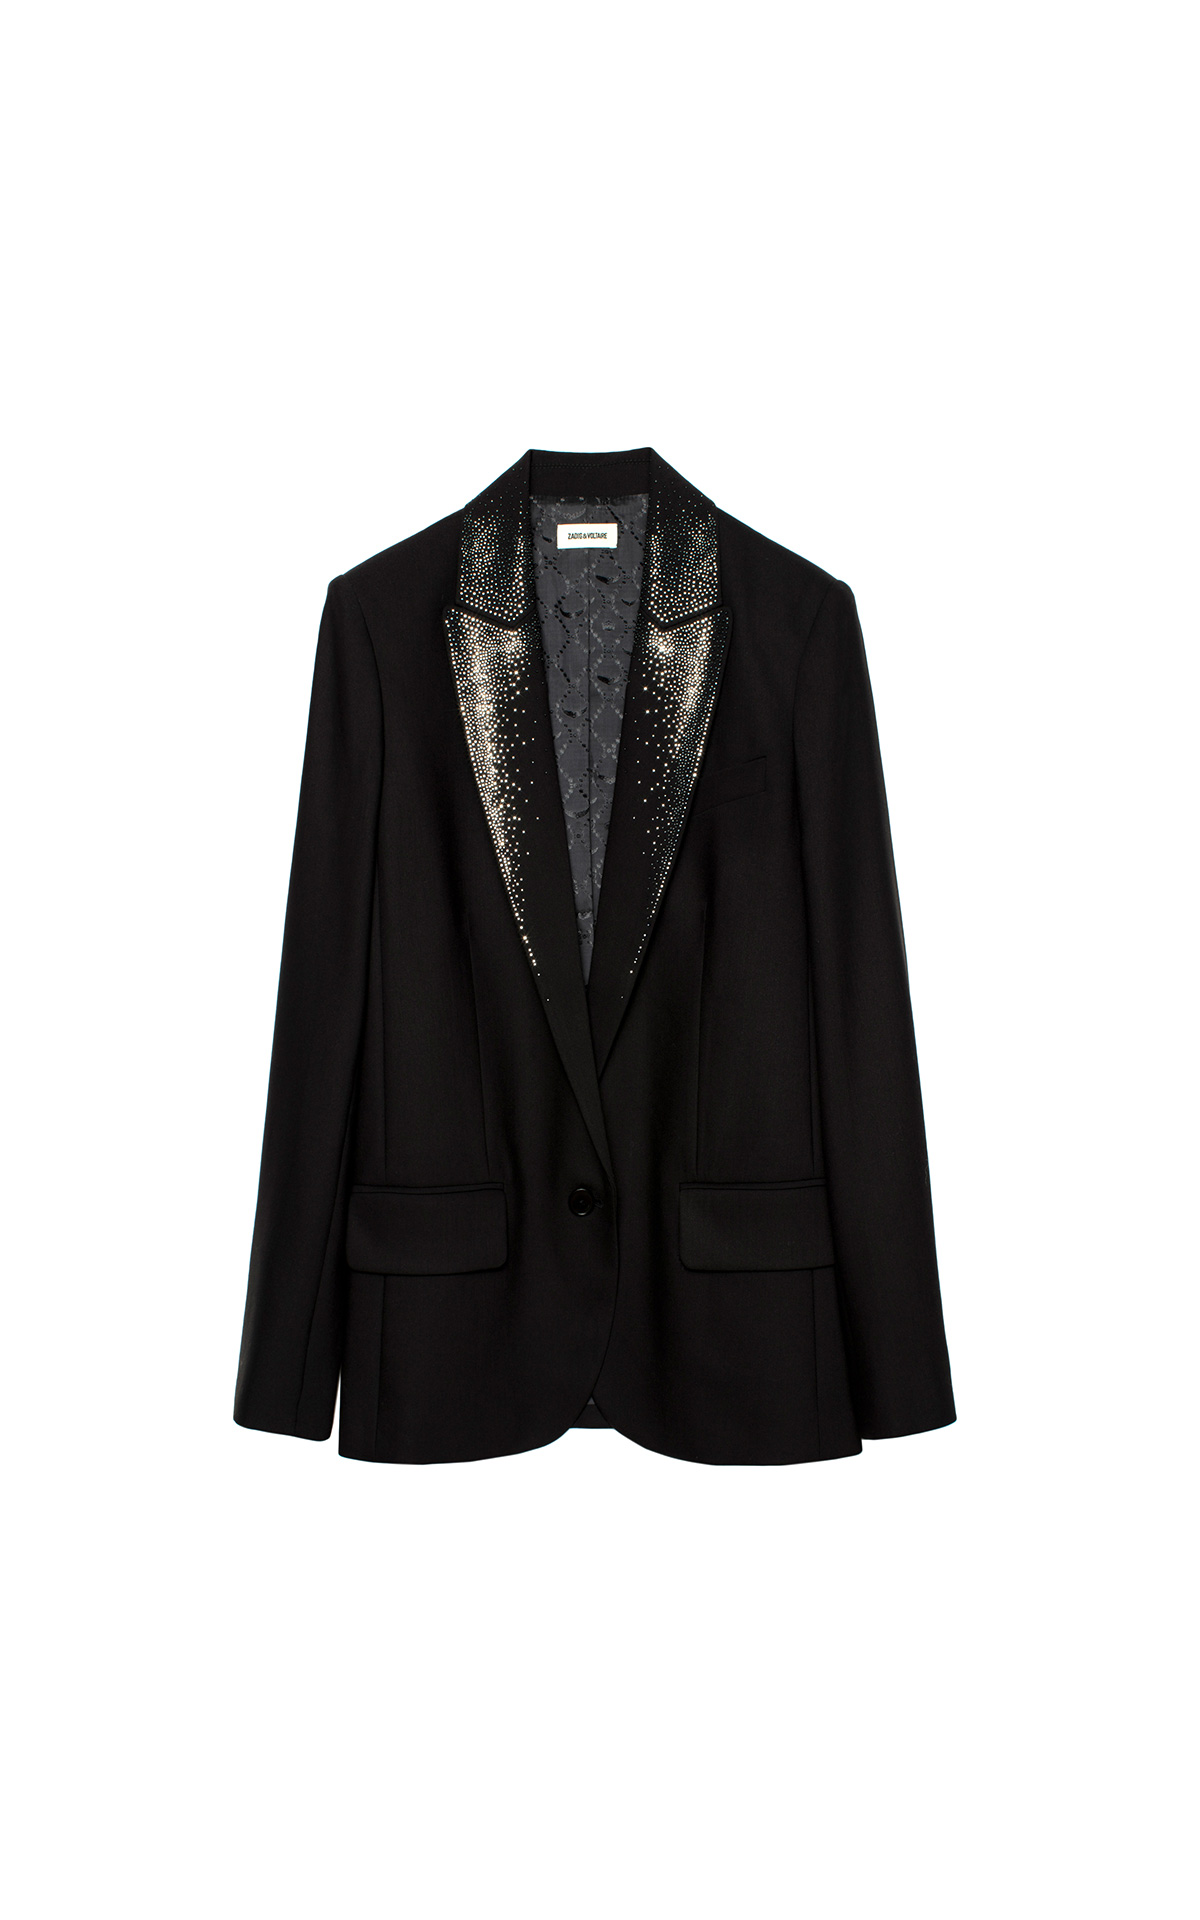 Zadig & Voltaire Black Viking Strass jacket | La Vallée Village